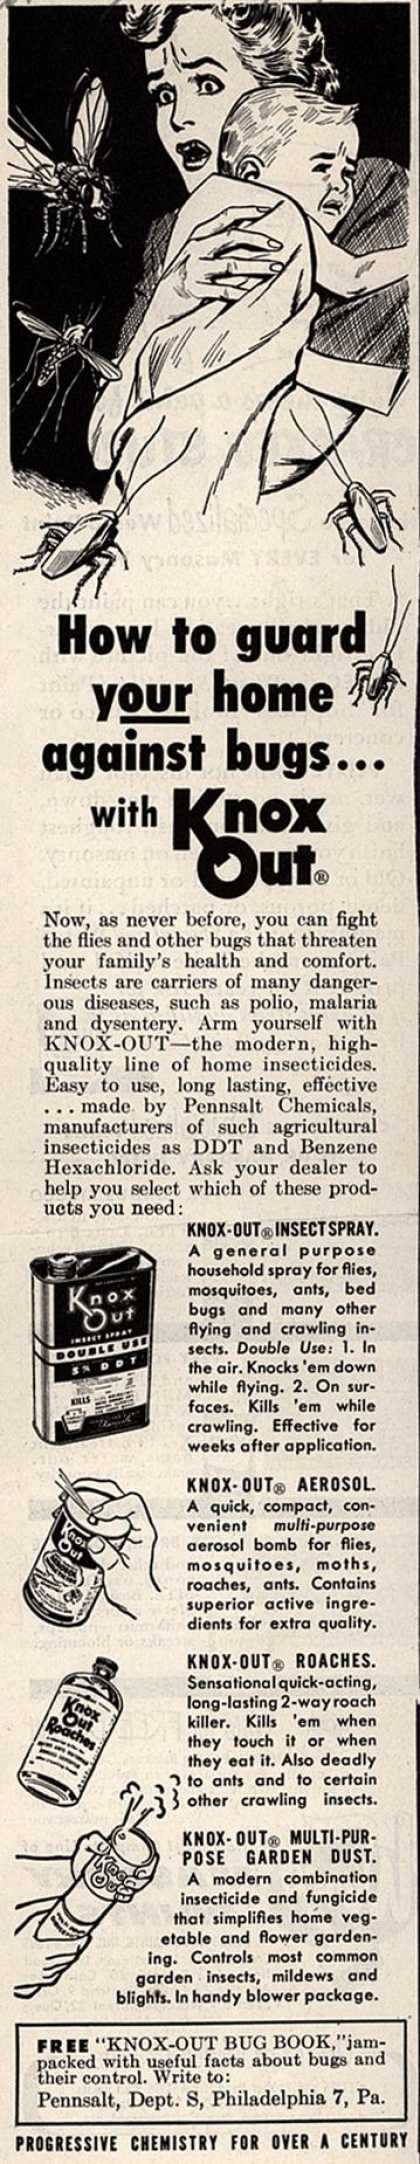 Pennsalt Chemical's Knox-Out – How to Guard Your Home Against Bugs...with Knox Out (1952)